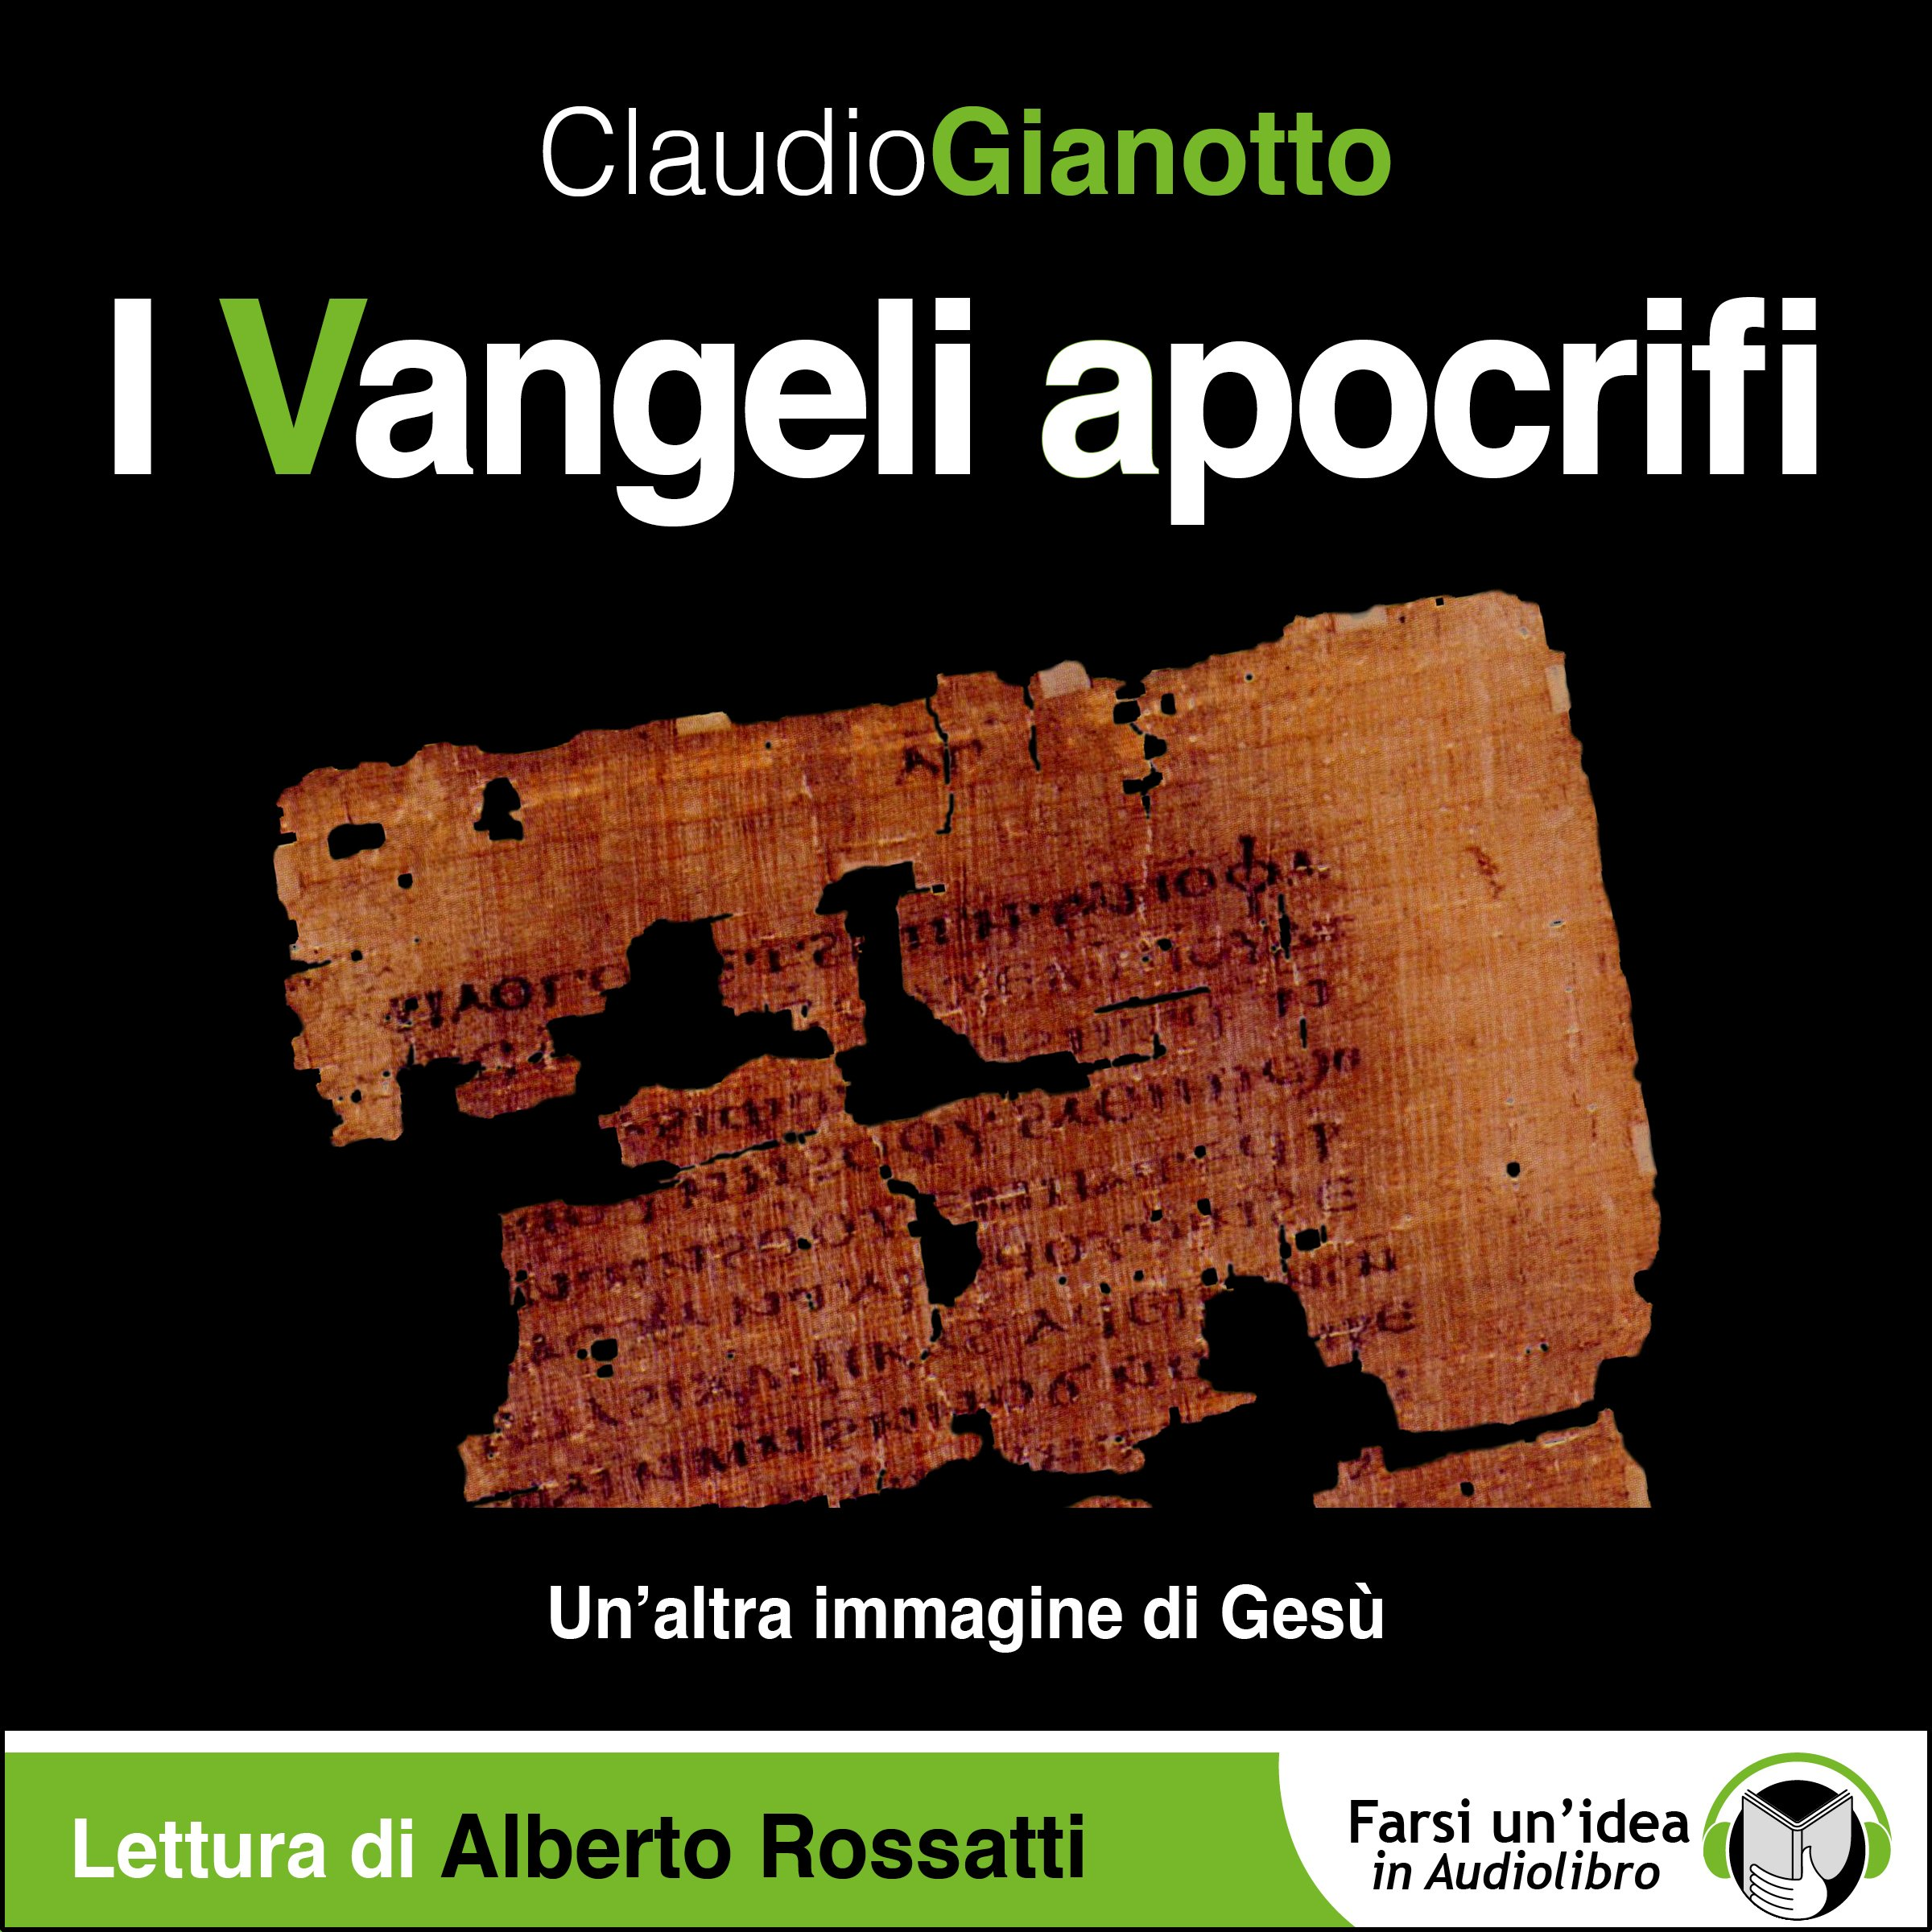 I Vangeli Apocrifi, di Caudio Gianotto, Ed. il Narratore FARSI UN'IDEA IN AUDIOLIBRO